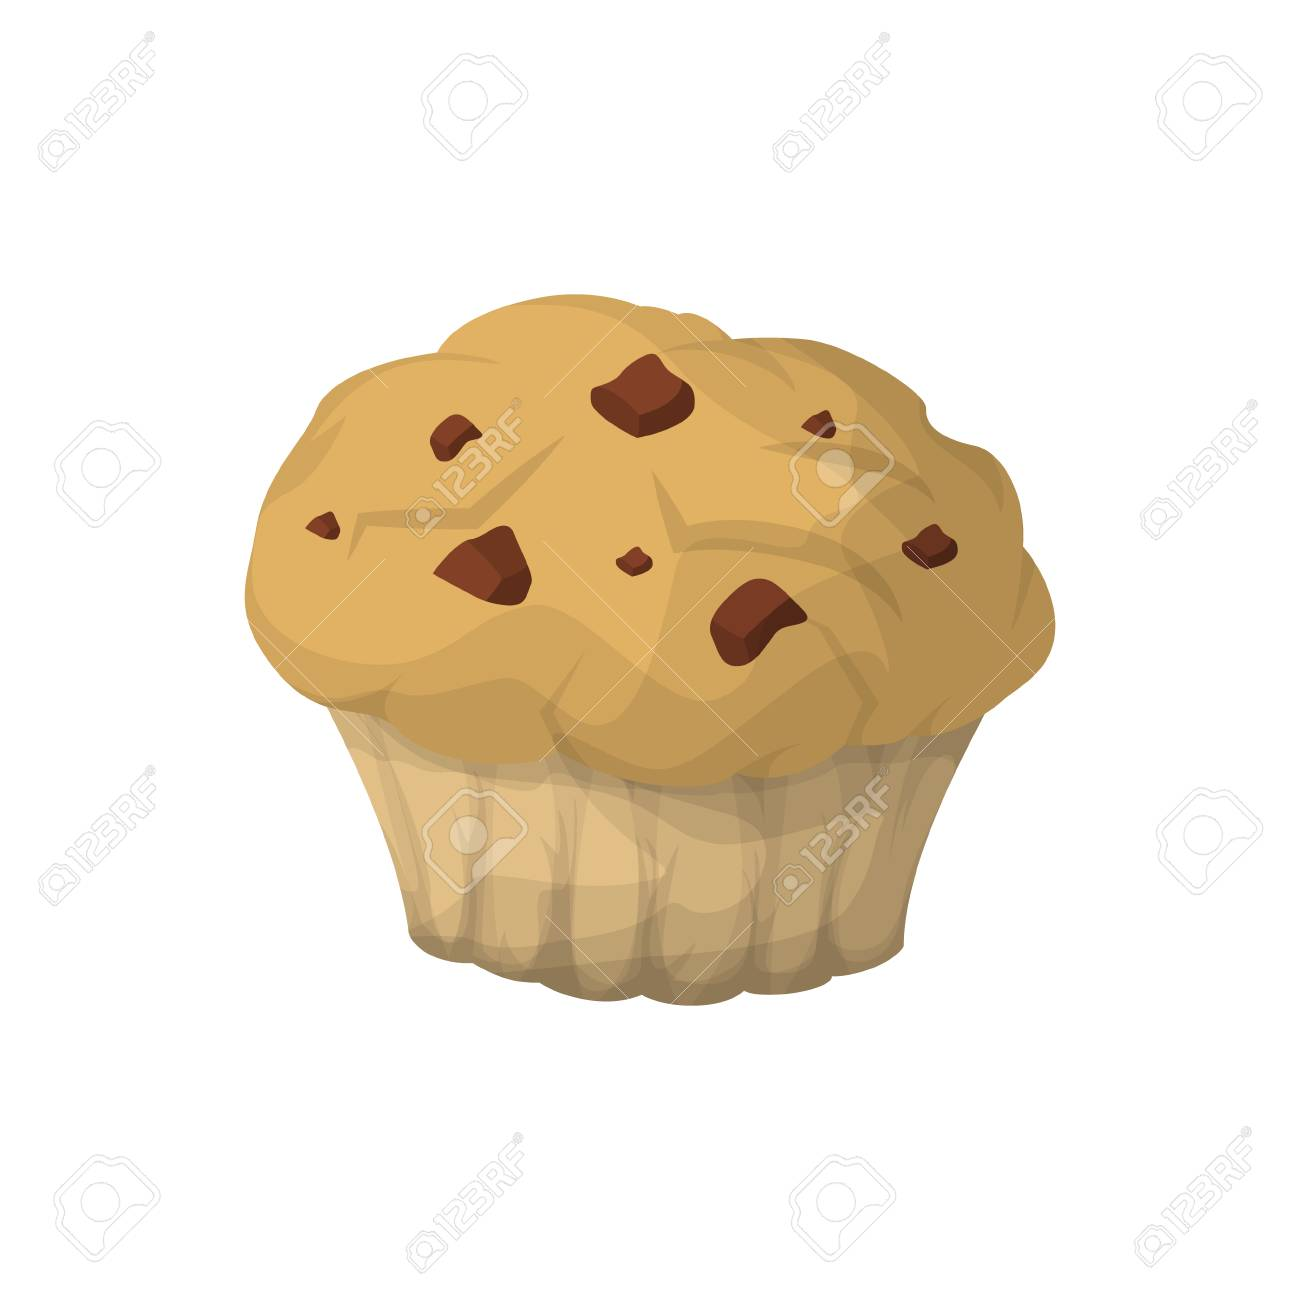 Isolated Breakfast Muffin With Chocolate Chips On White Background Royalty Free Cliparts Vectors And Stock Illustration Image 83876820